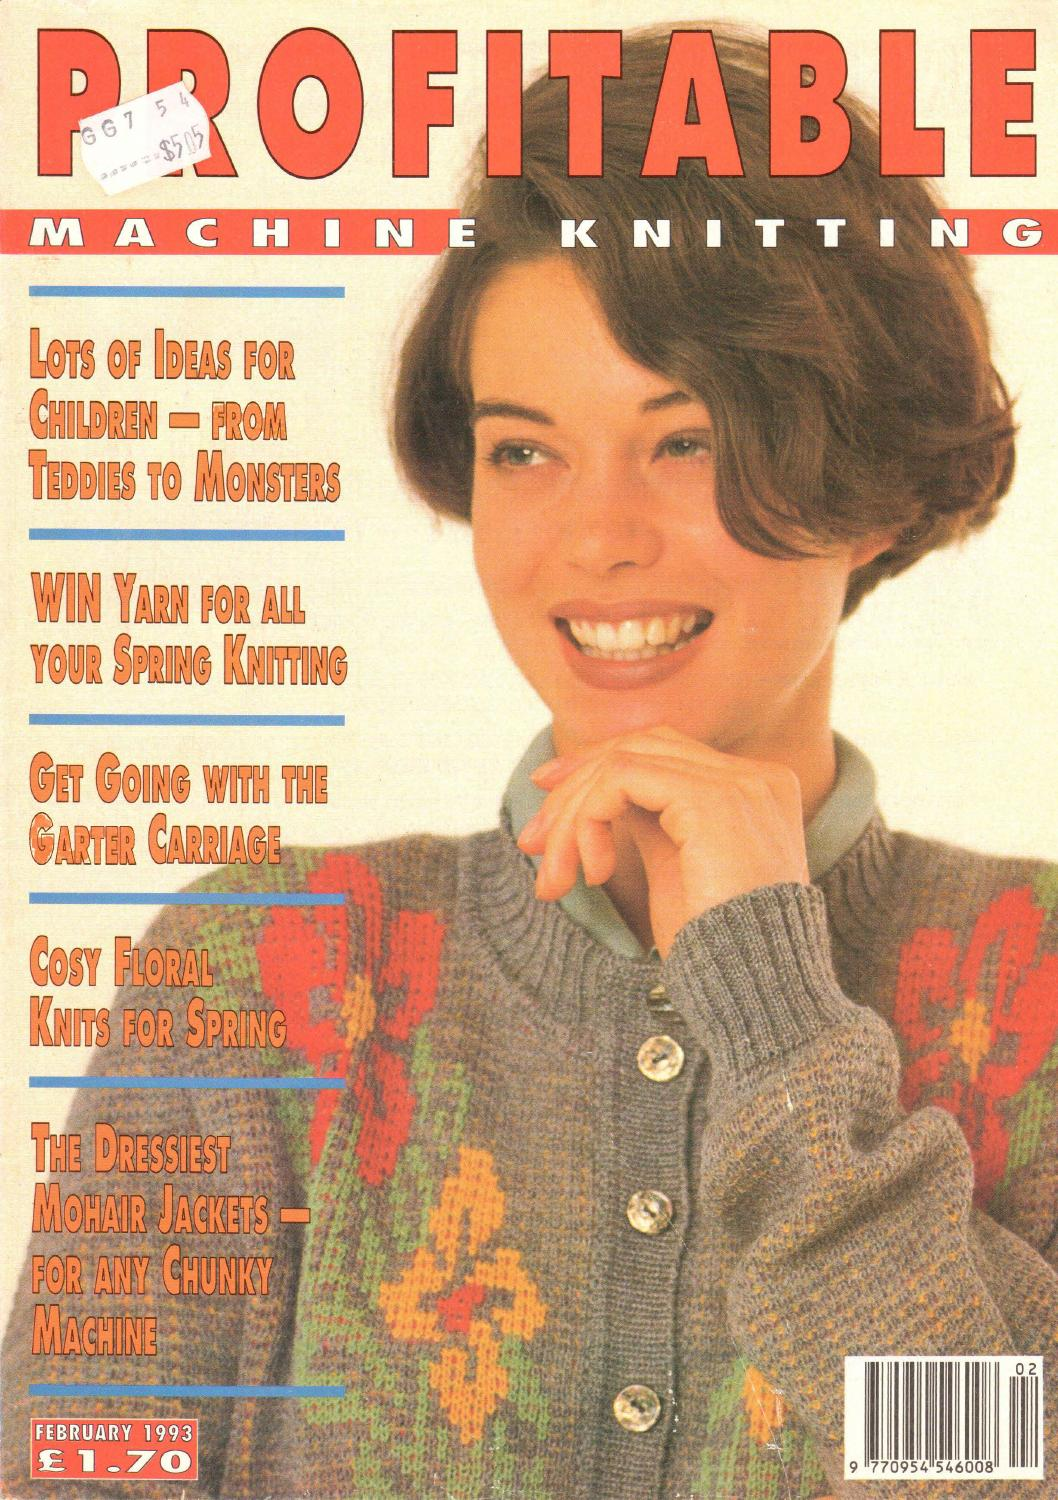 Profitable machine knitting magazine 1993 02 300dpi clearscan ocr by  Daniela Benedetta Cameron - issuu